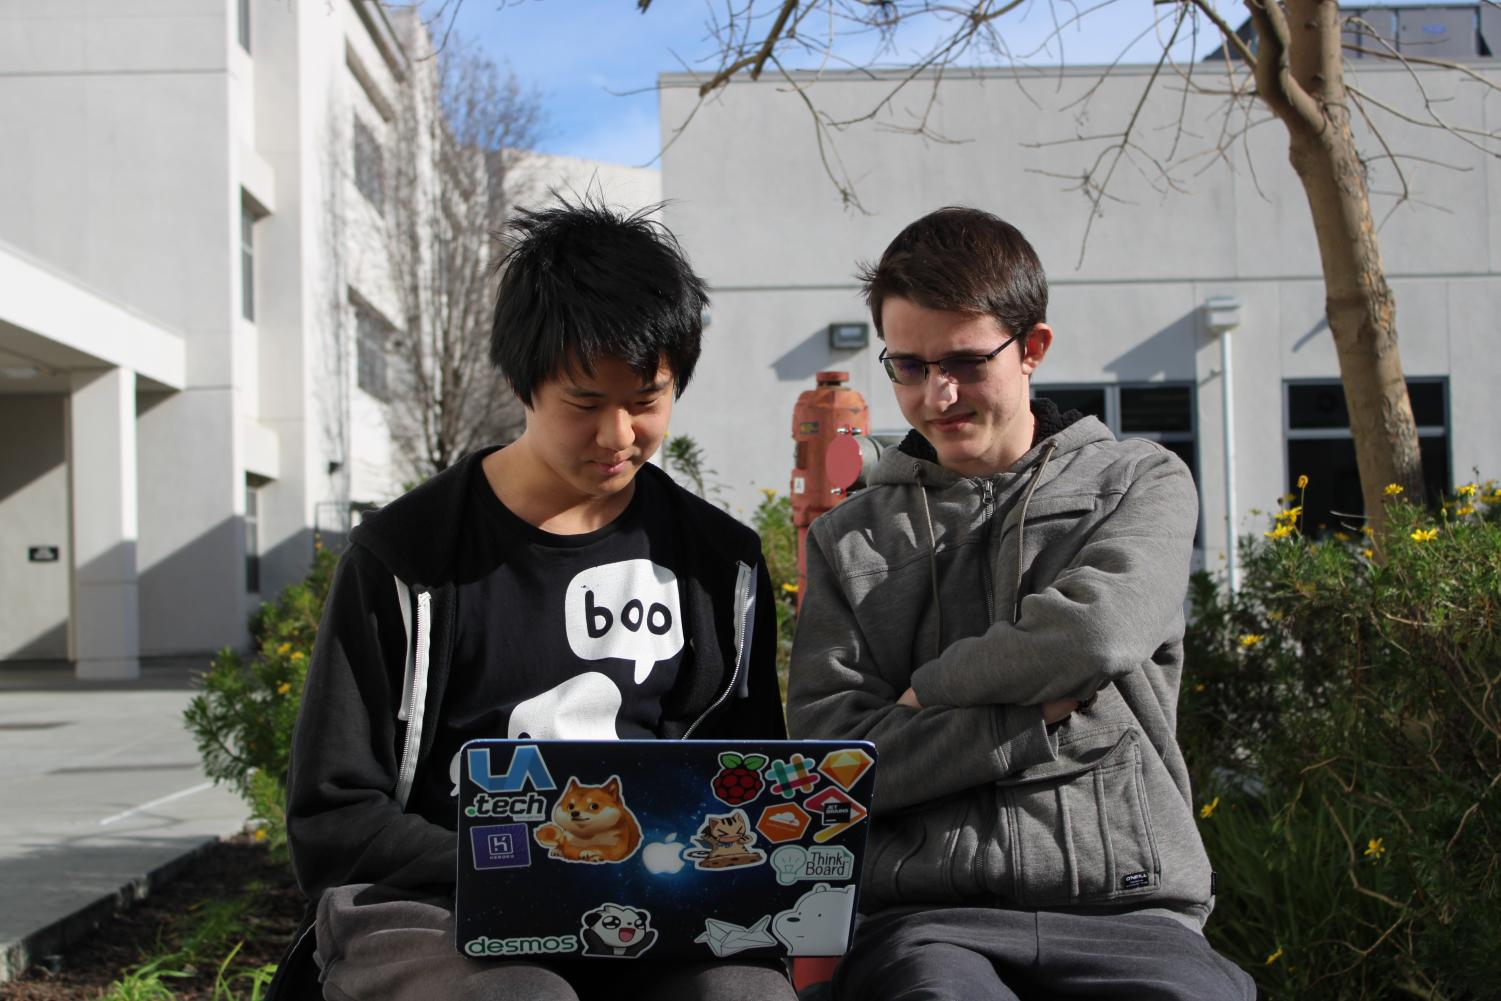 The SRC Hacks (pronounced source hacks) coding event, run by seniors Chris Liu, left, and Andrew Moshkovich, will be Feb. 22-23 in San Francisco. Participants will create their own coding projects over a 24 hour period.